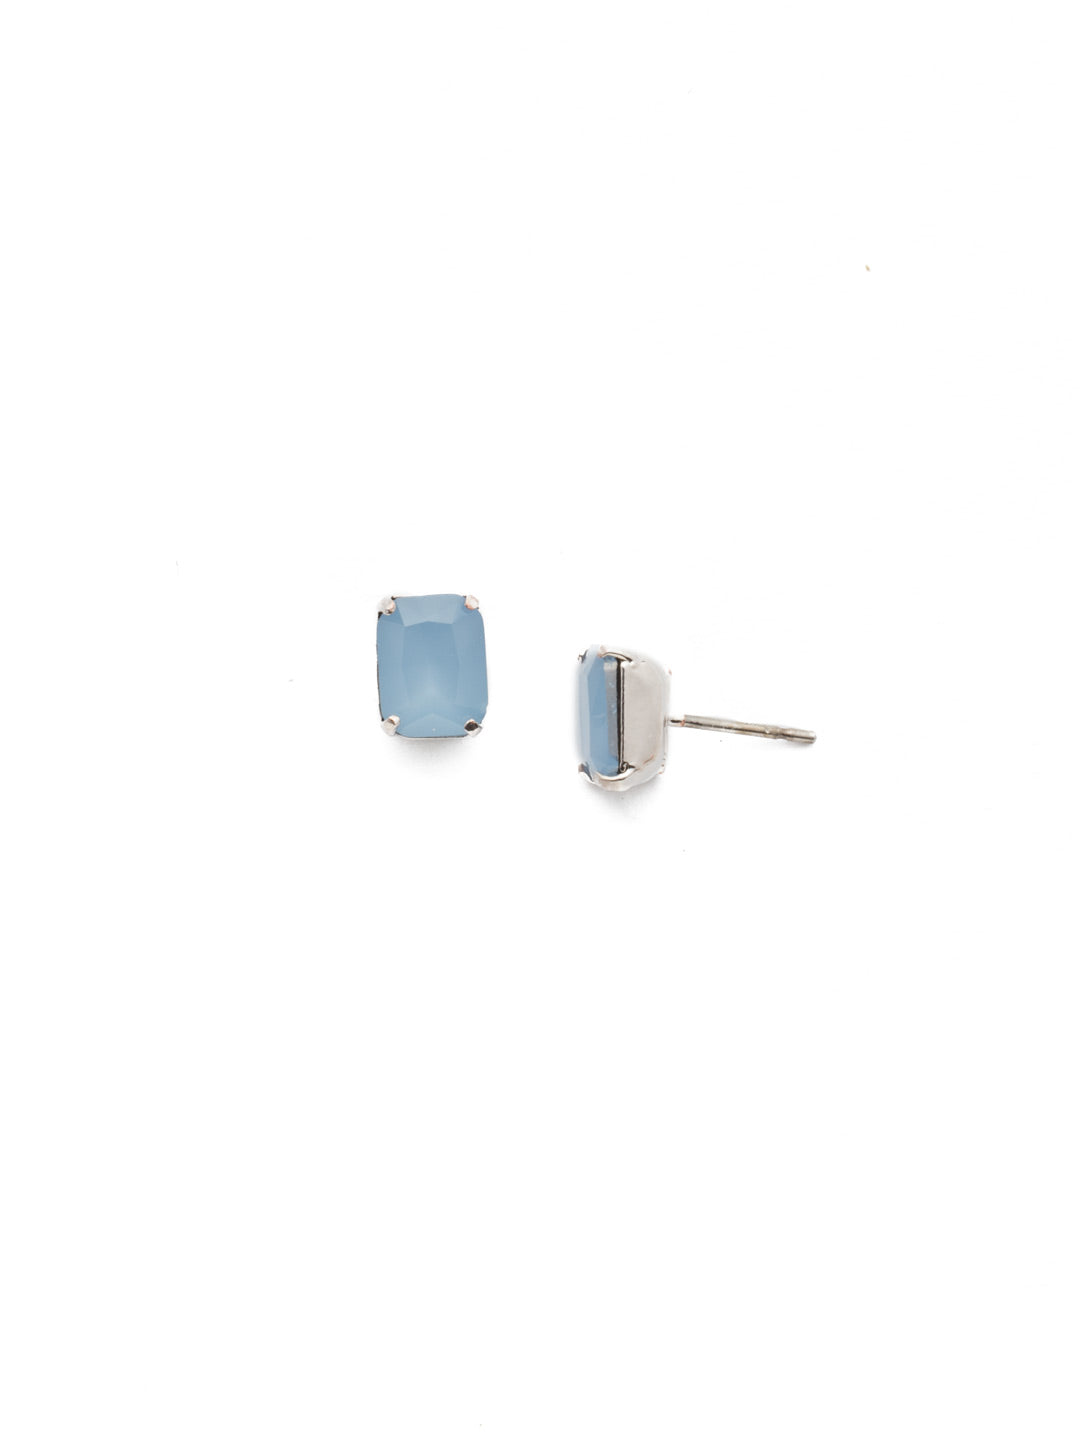 Mini Emerald Cut Stud Earrings - EBY42RHNTB